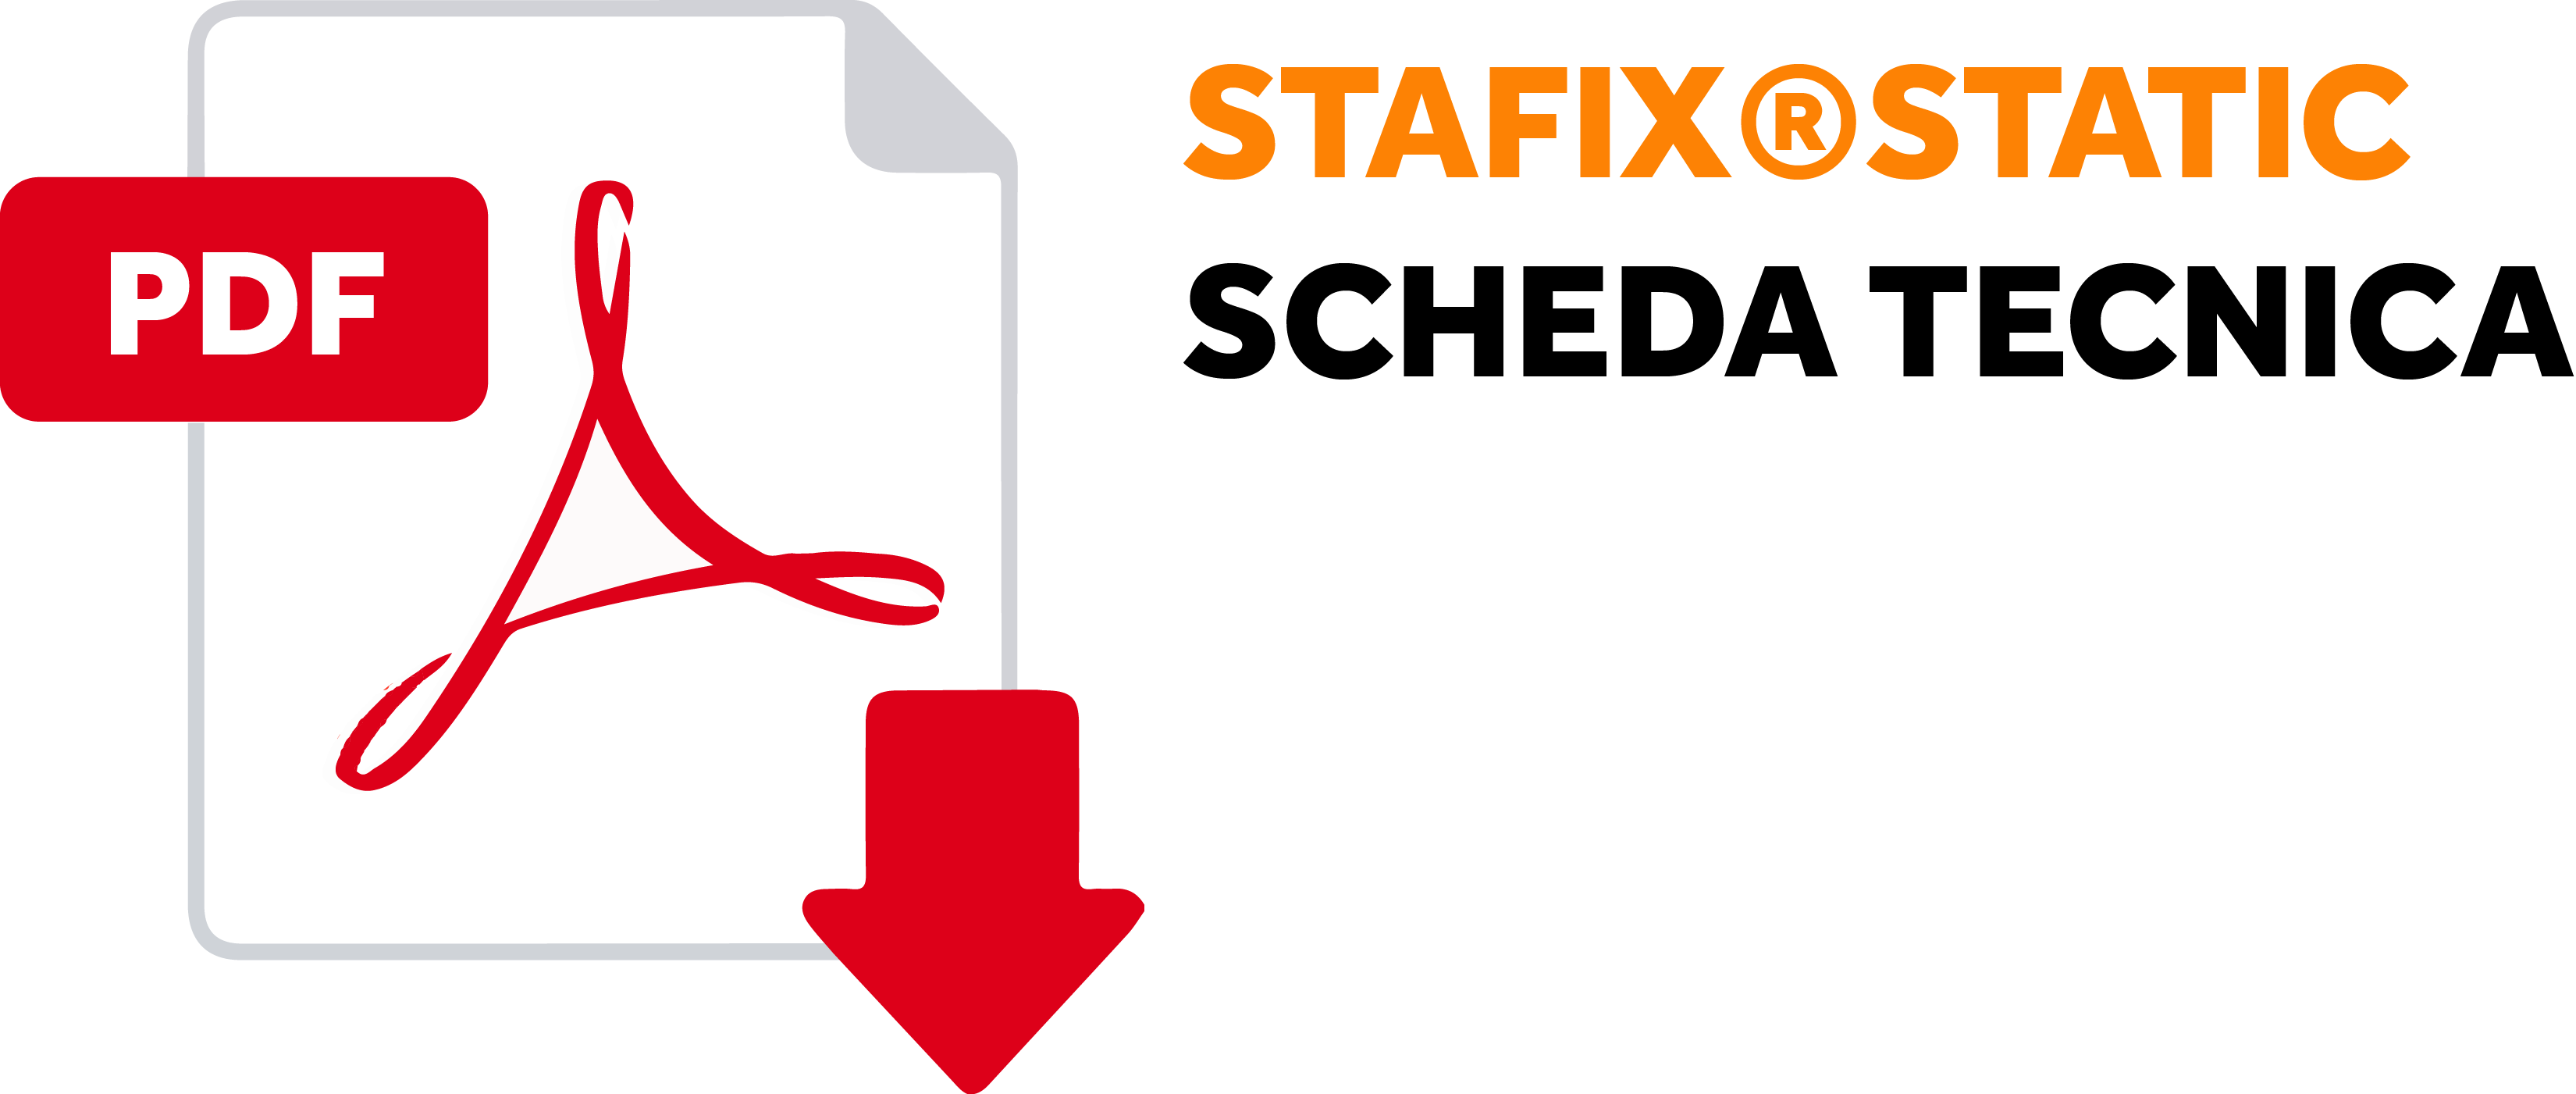 STAFIX_dowload_product_data_2_2015_ENG